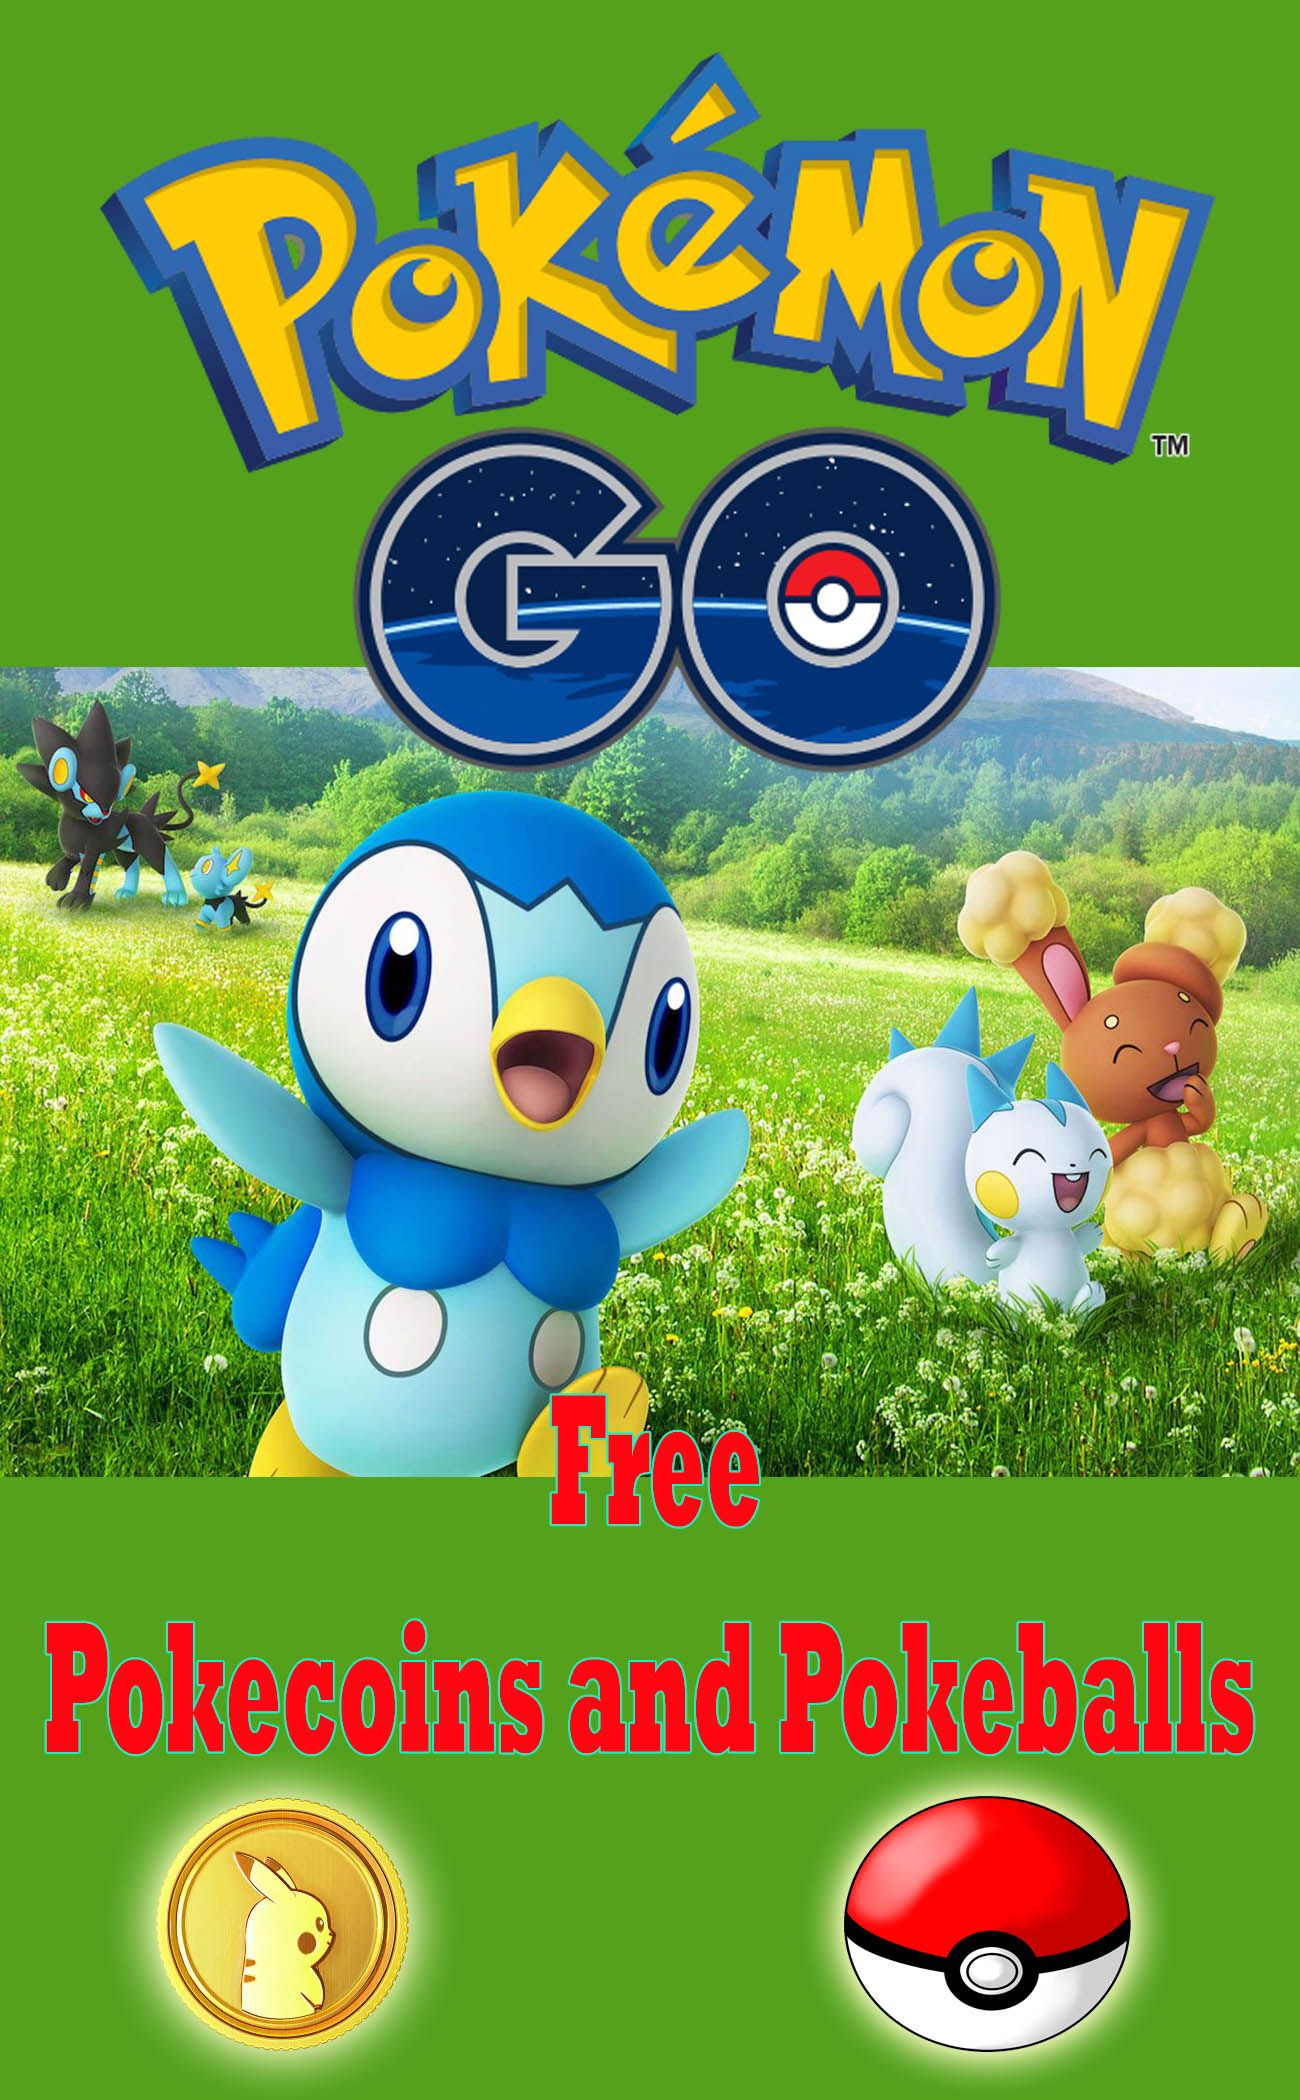 Hack pokemon go unlimited pokecoins and pokeballs in